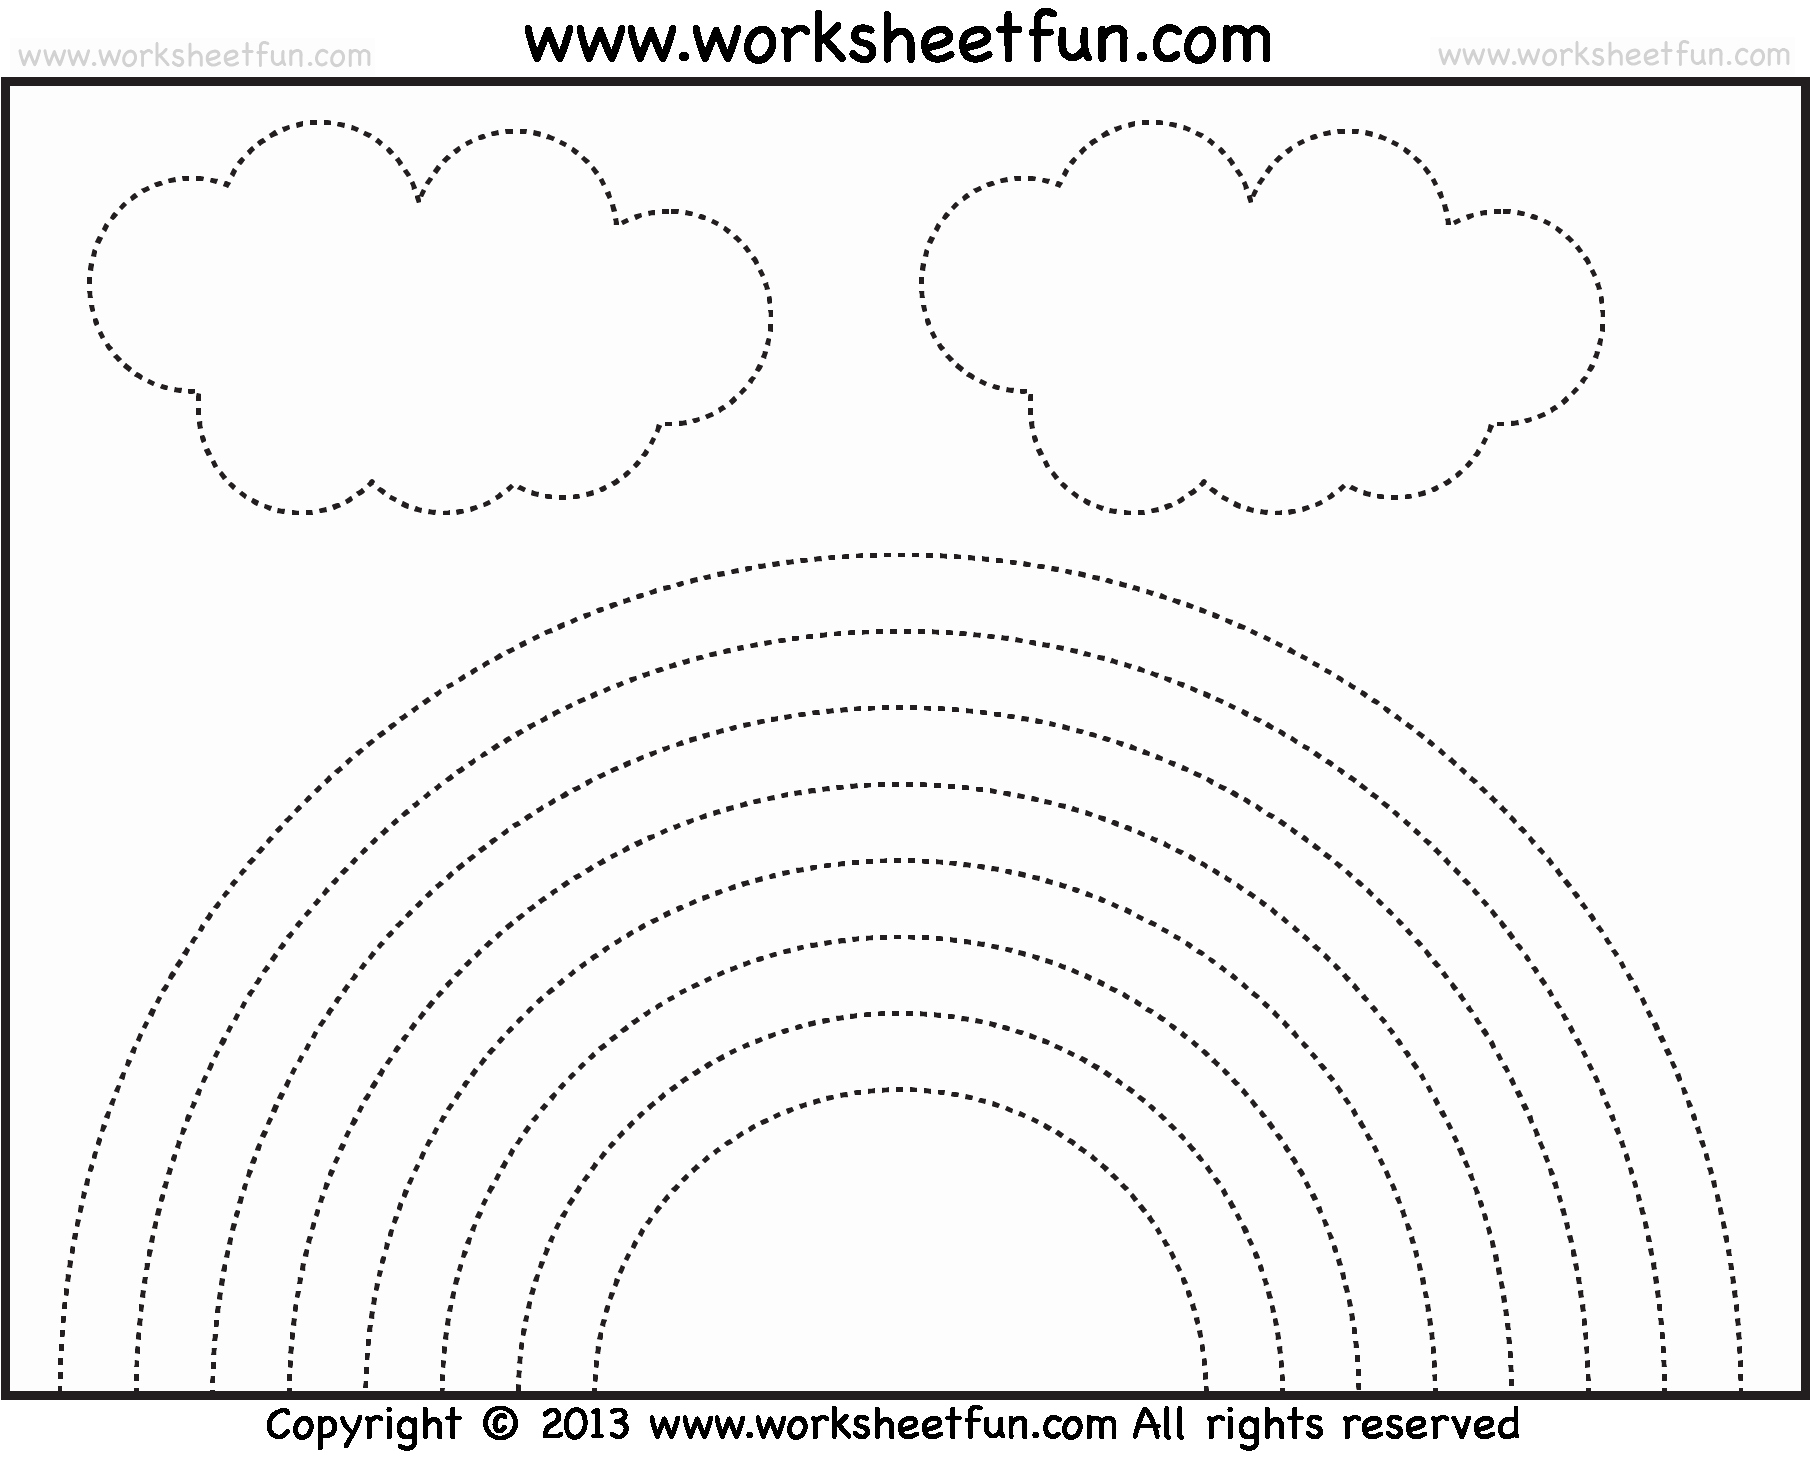 Rainbow Worksheets Preschool Lovely Crafts Actvities and Worksheets for Preschool toddler and